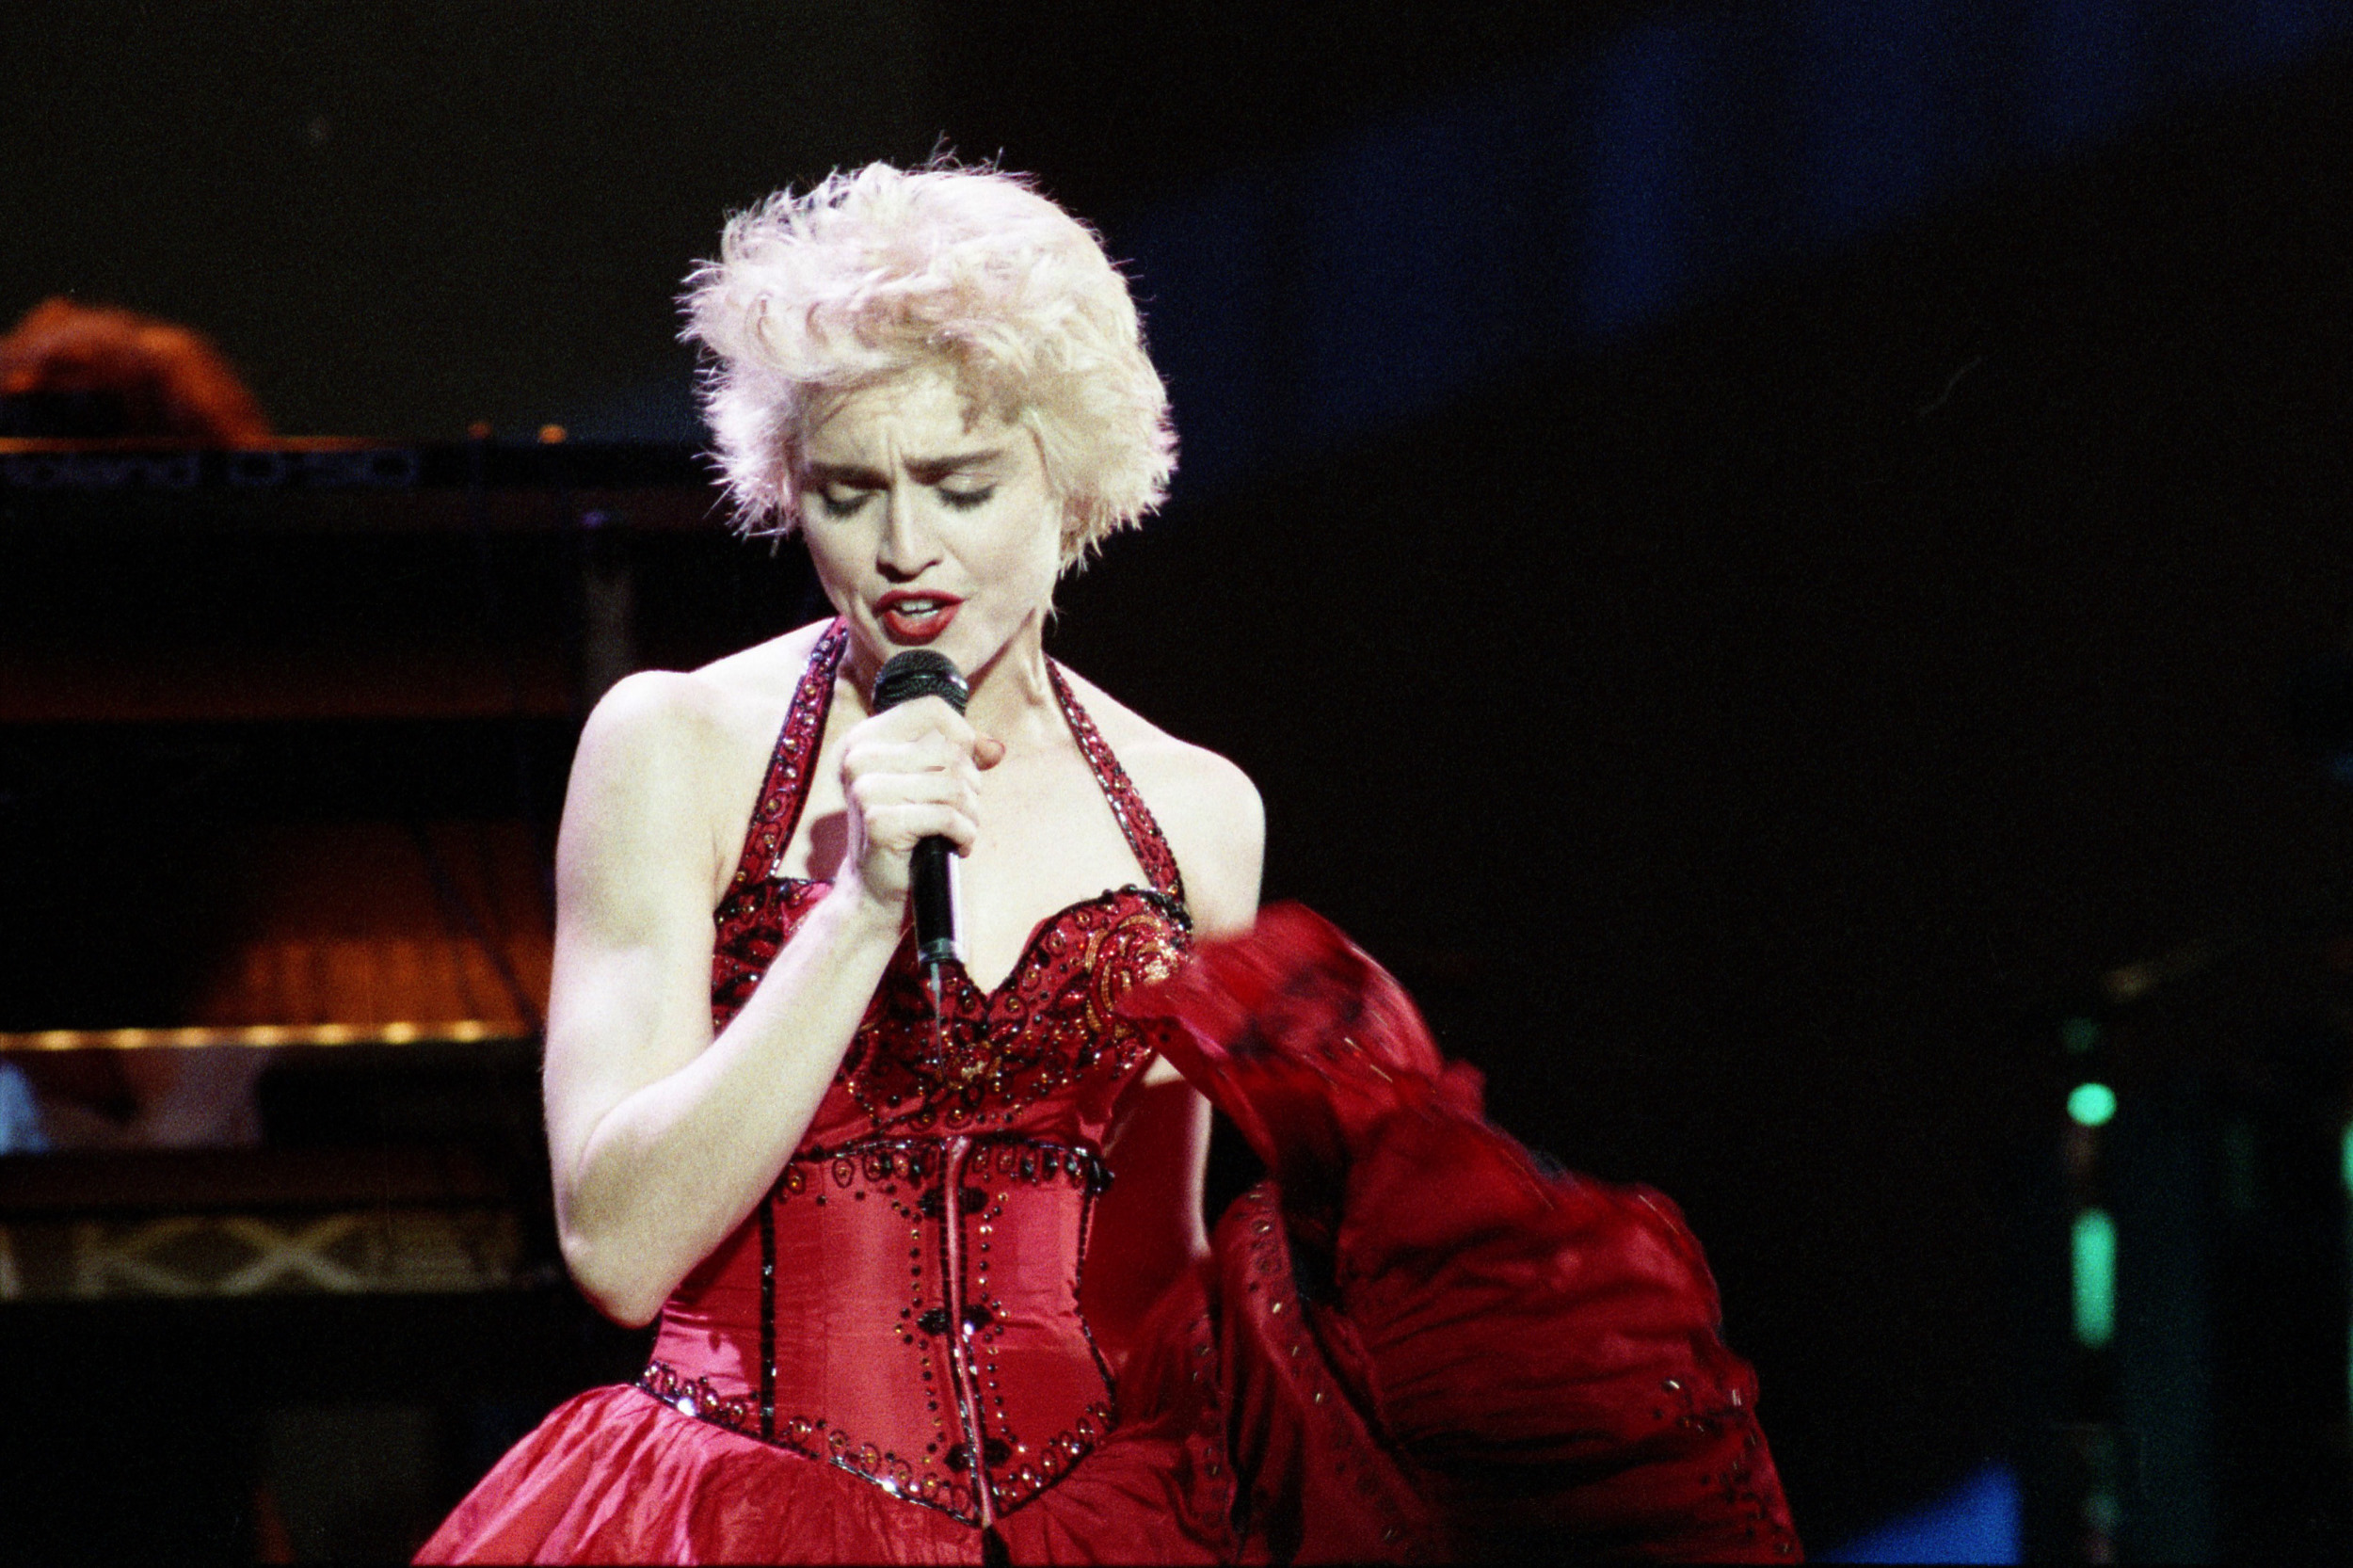 pop muziek popmuziek muzikanten artiest Engeland Londen Wembley Stadium Madonna 19 08 1987 Whos That Girl World Tour zangeres Amerika Amerikaanse Queen of Pop